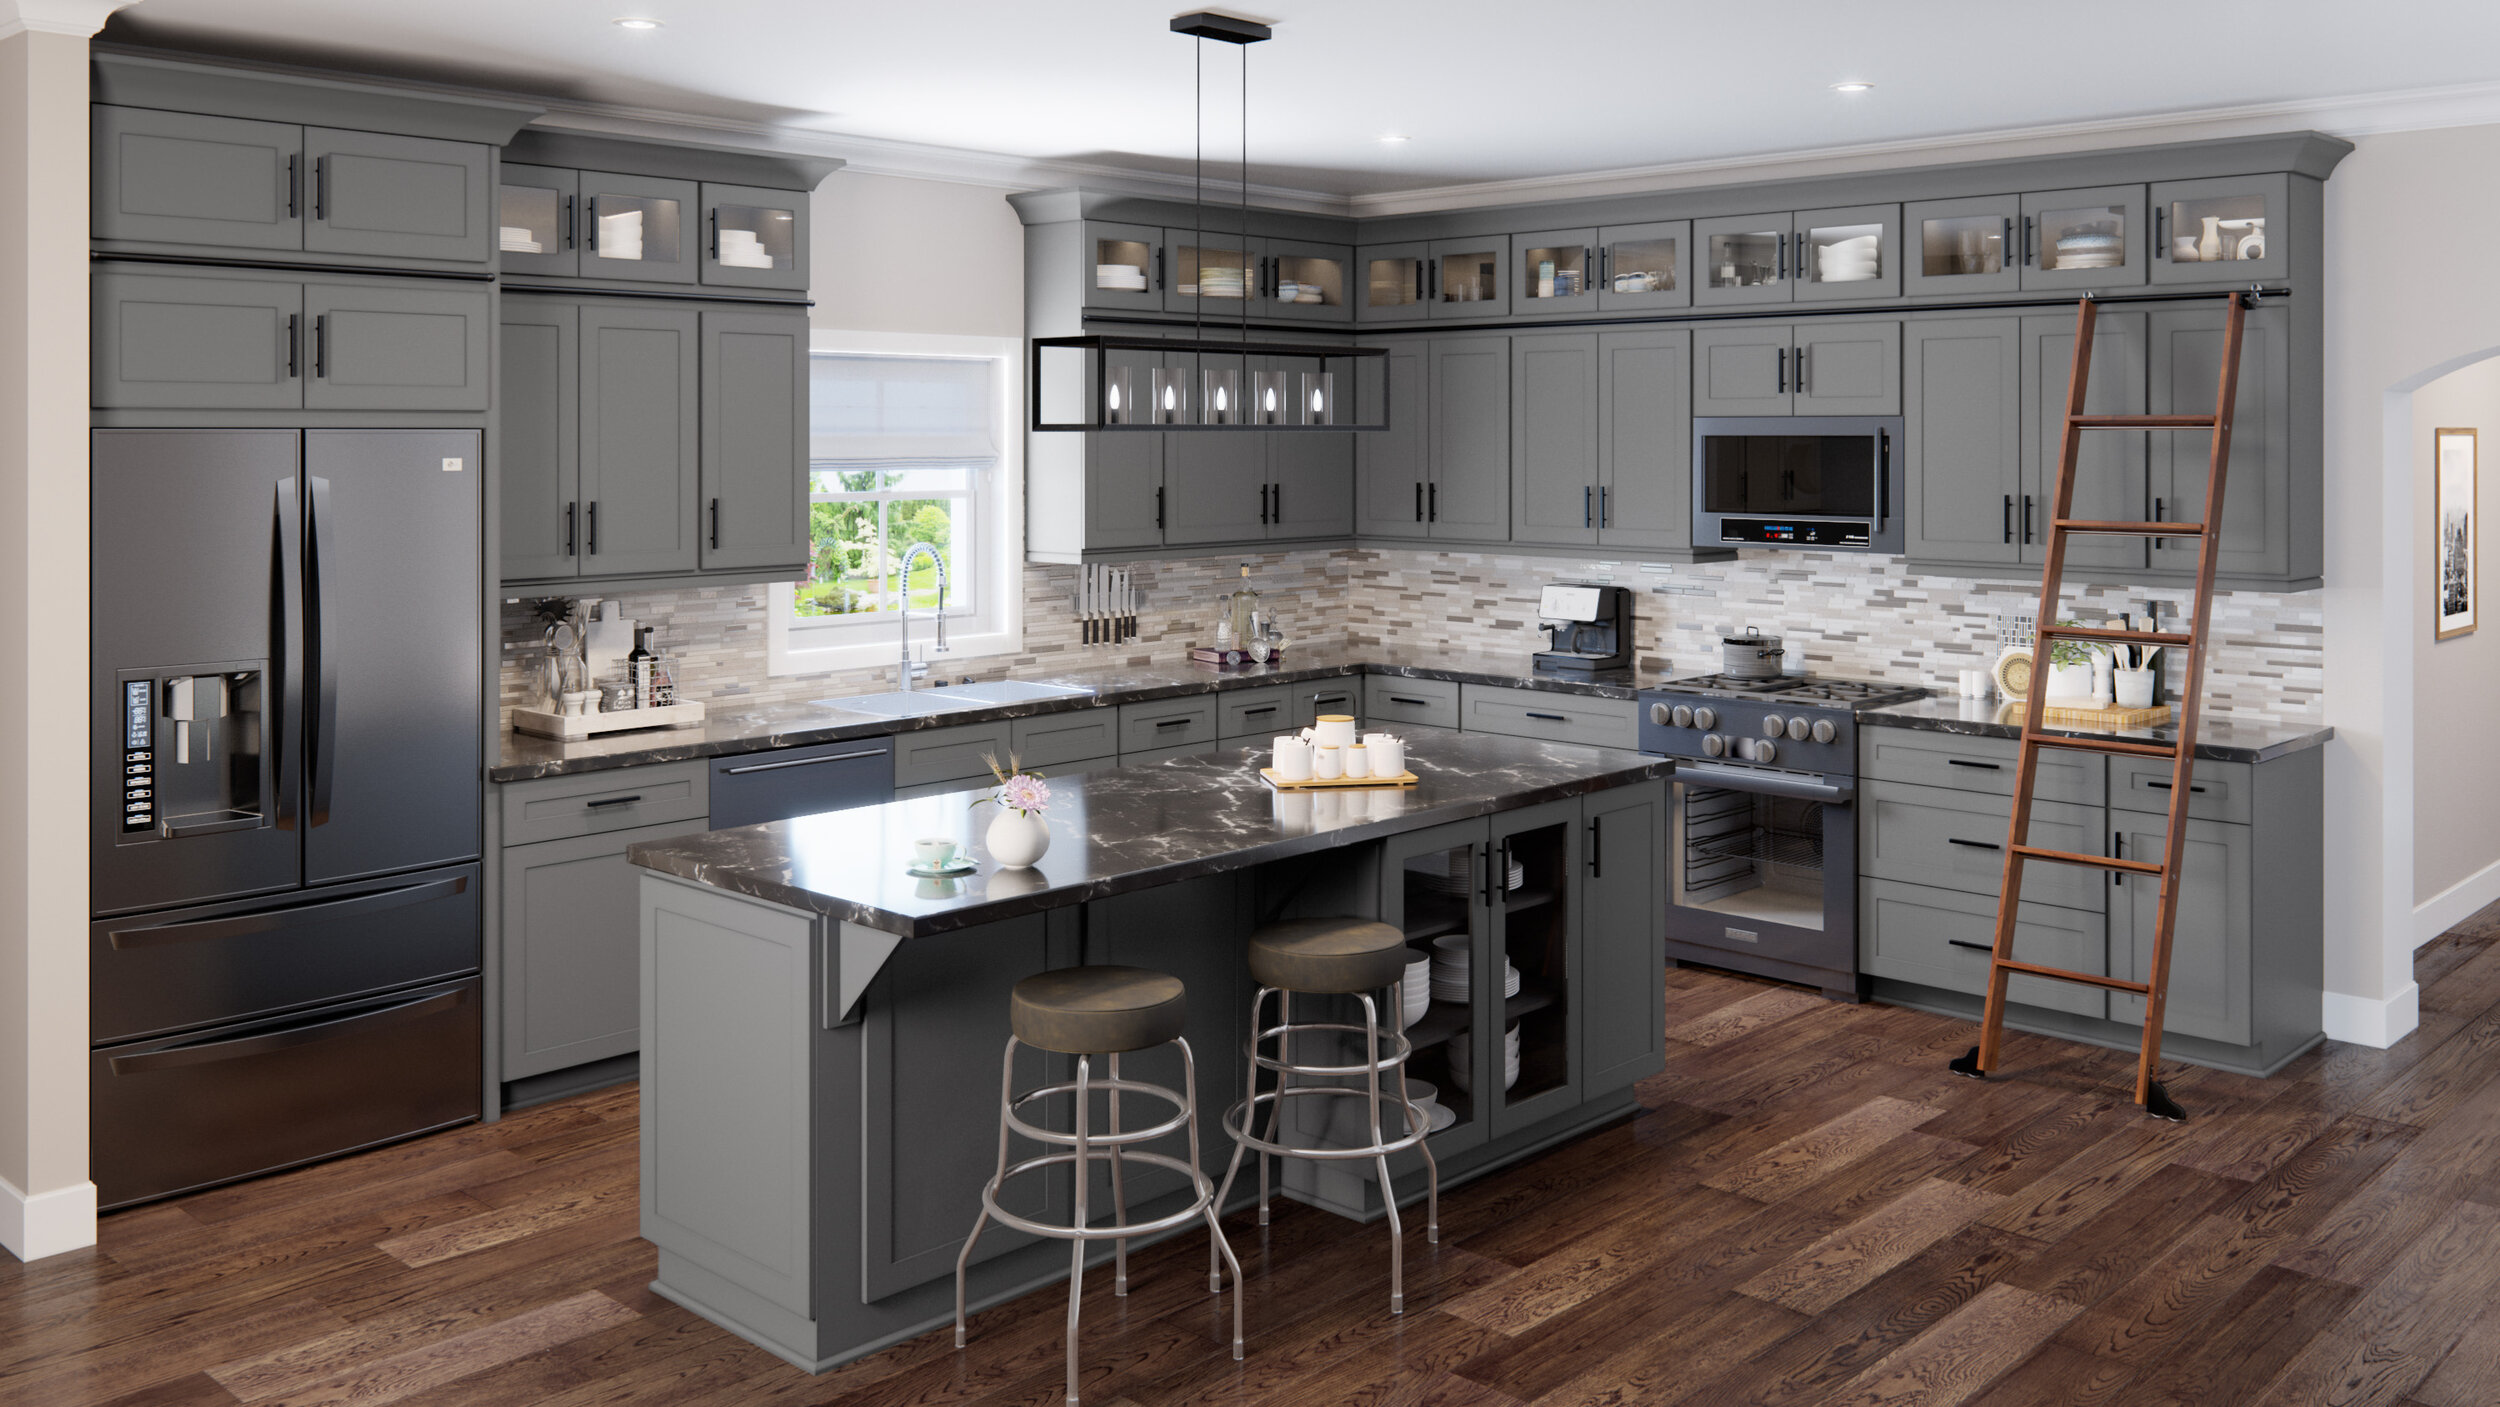 Counter Tops -